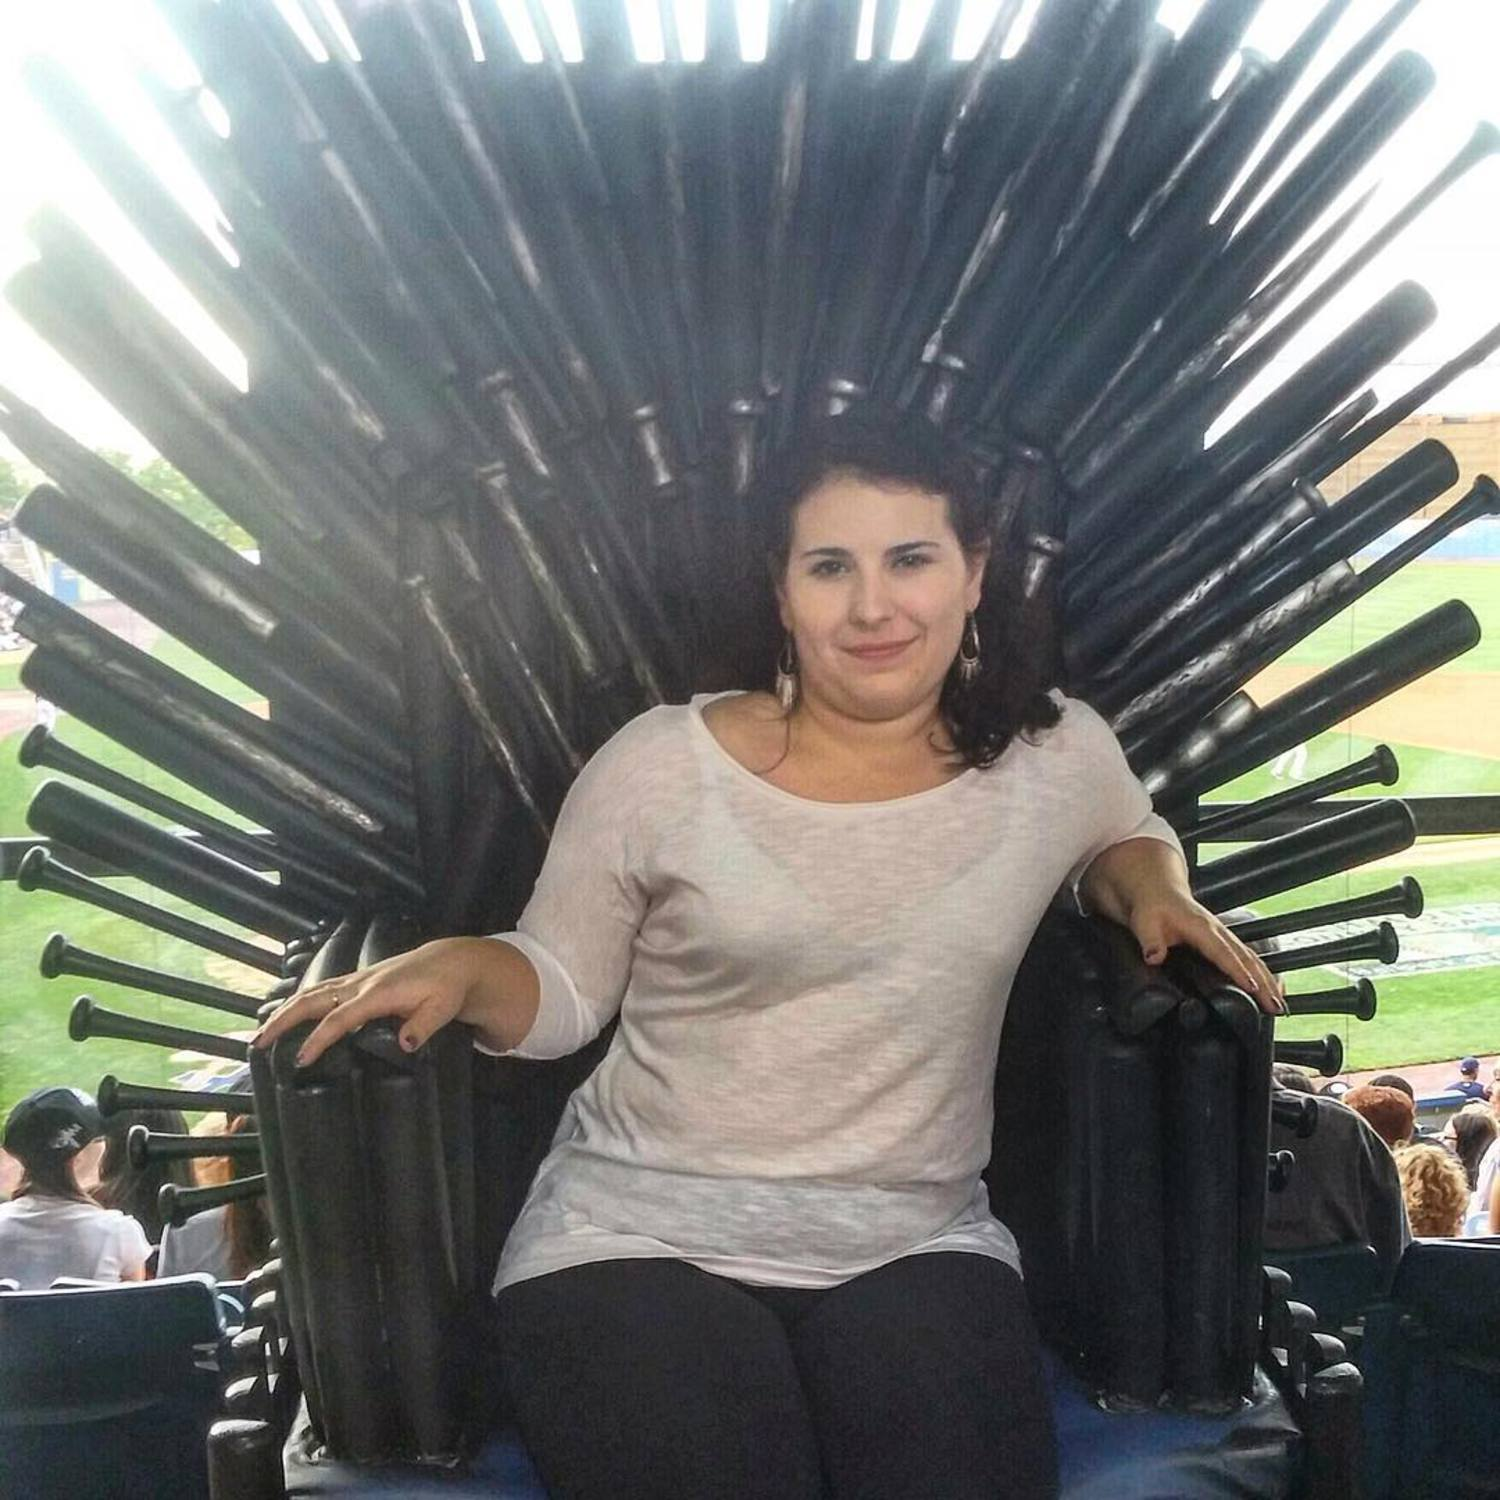 All hail queen 👑 Danielle of house DOnofrio, first of her name, protector of shoes 👠 and conqueror of wine 🍷#gameofthronesnight #sittingontheironthrone #statenislandyankees #direwolves #baller